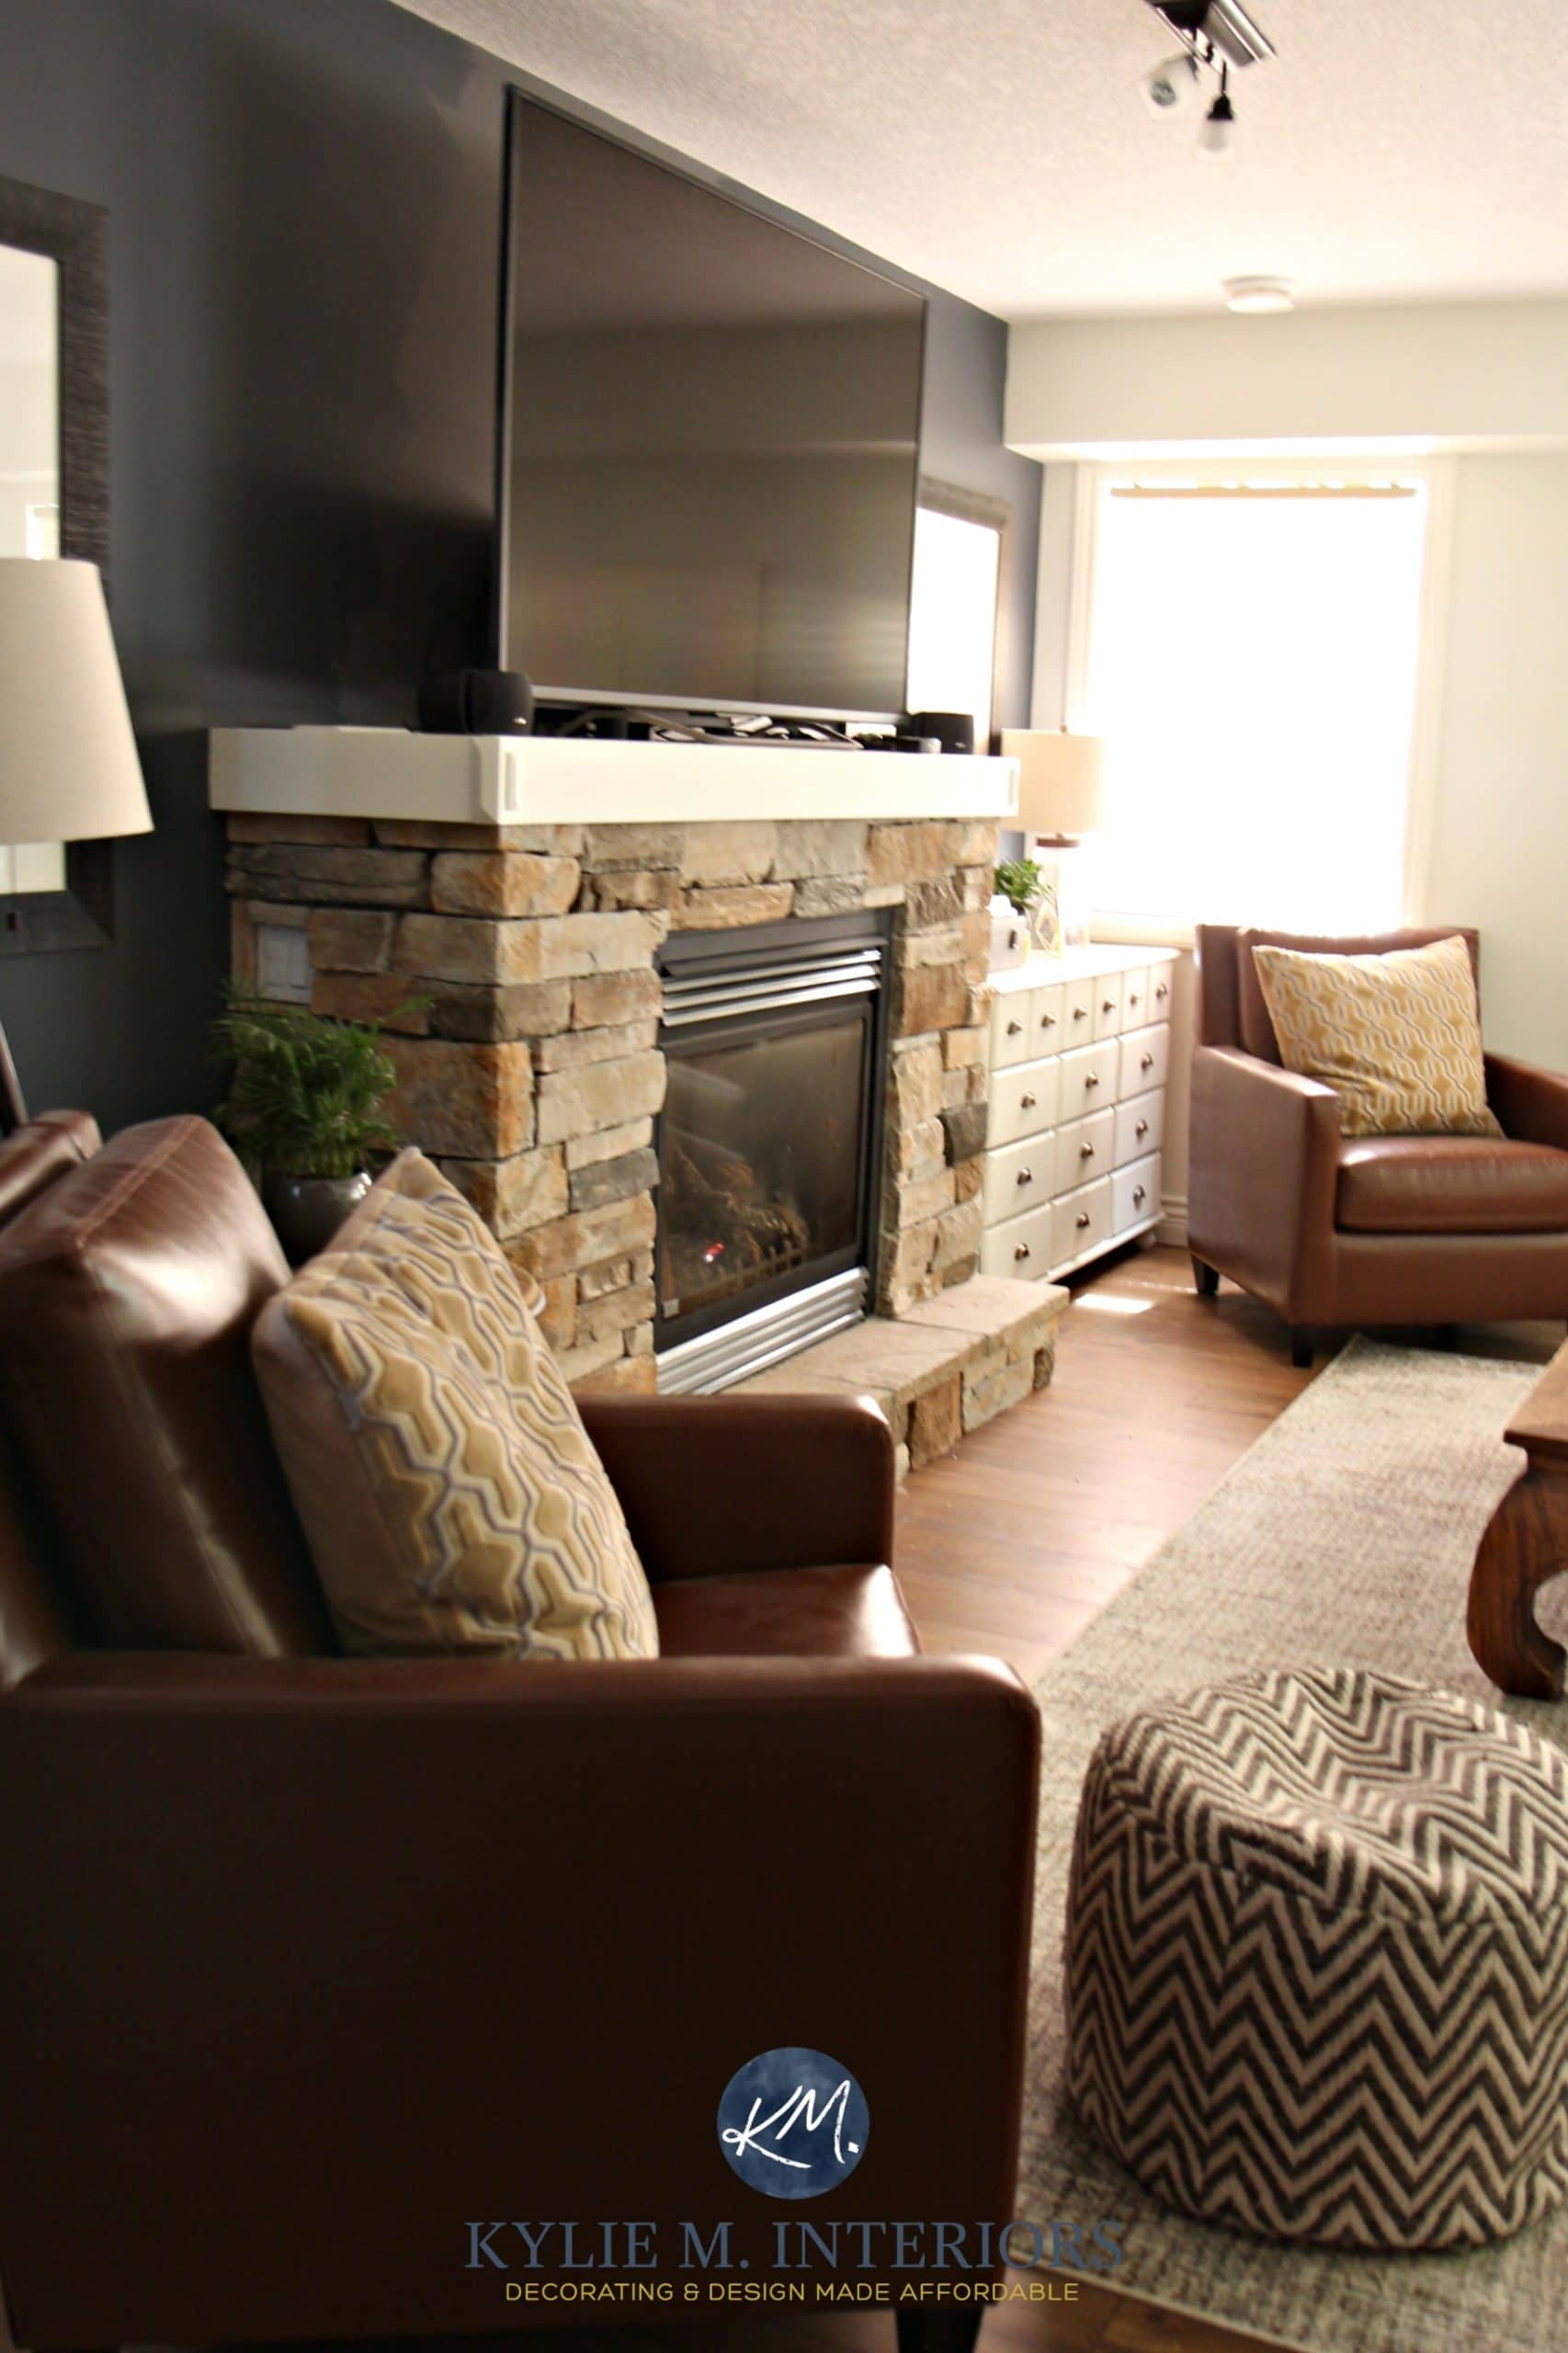 Family Room With Tv On Mantel Above Stone Fireplace With 2 Leather Accent  Chairs And Sherwin Williams Cyberspace. Kylie M Interiors E Design